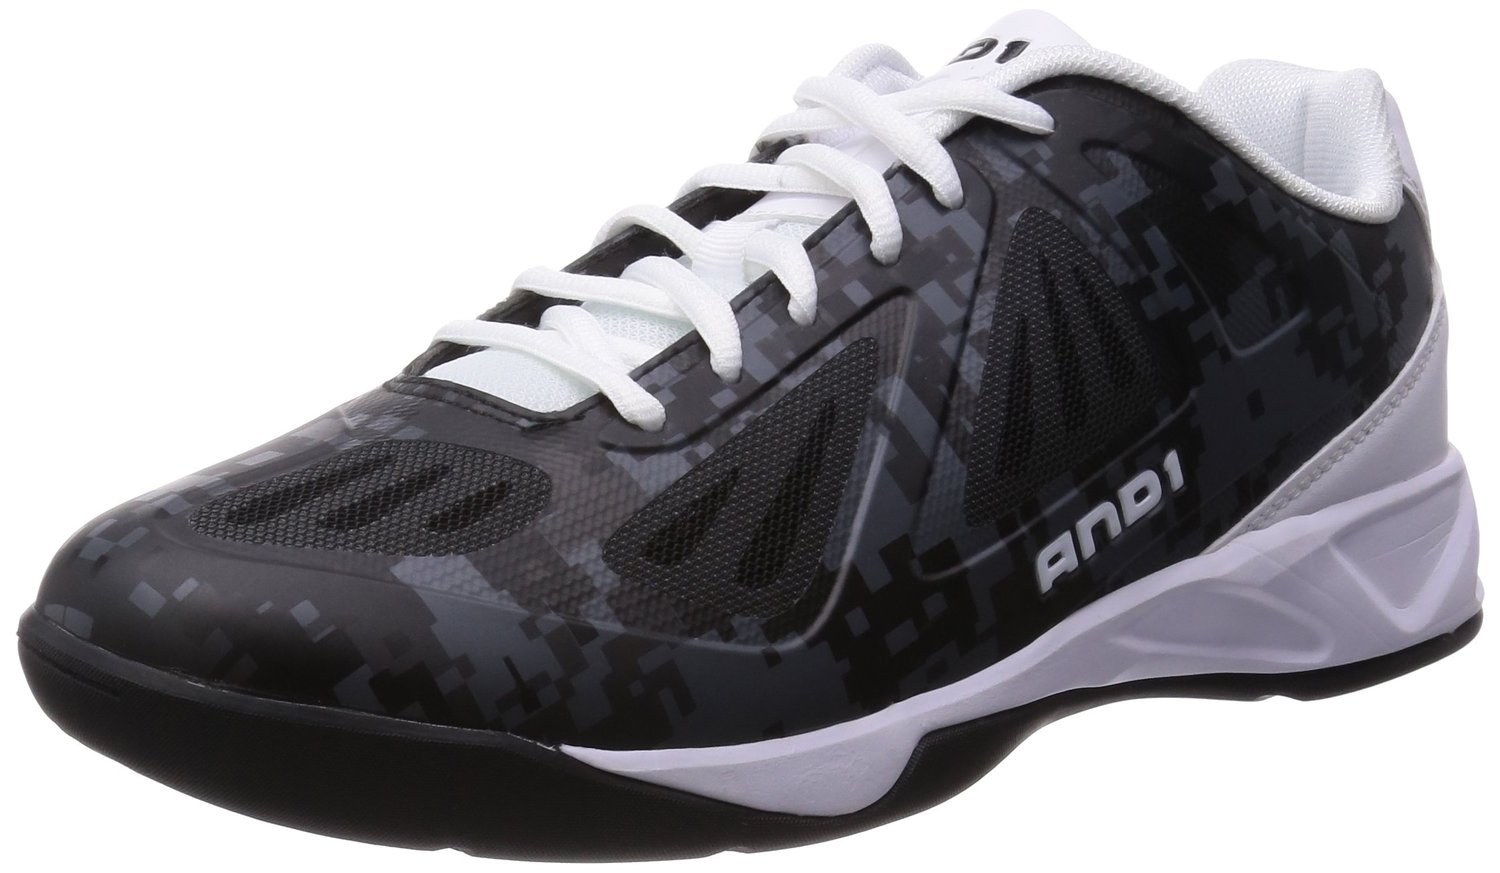 7a19be24ba6 Buy and 1 Mens Xcelerate Low Basketball Shoe in Cheap Price on ...